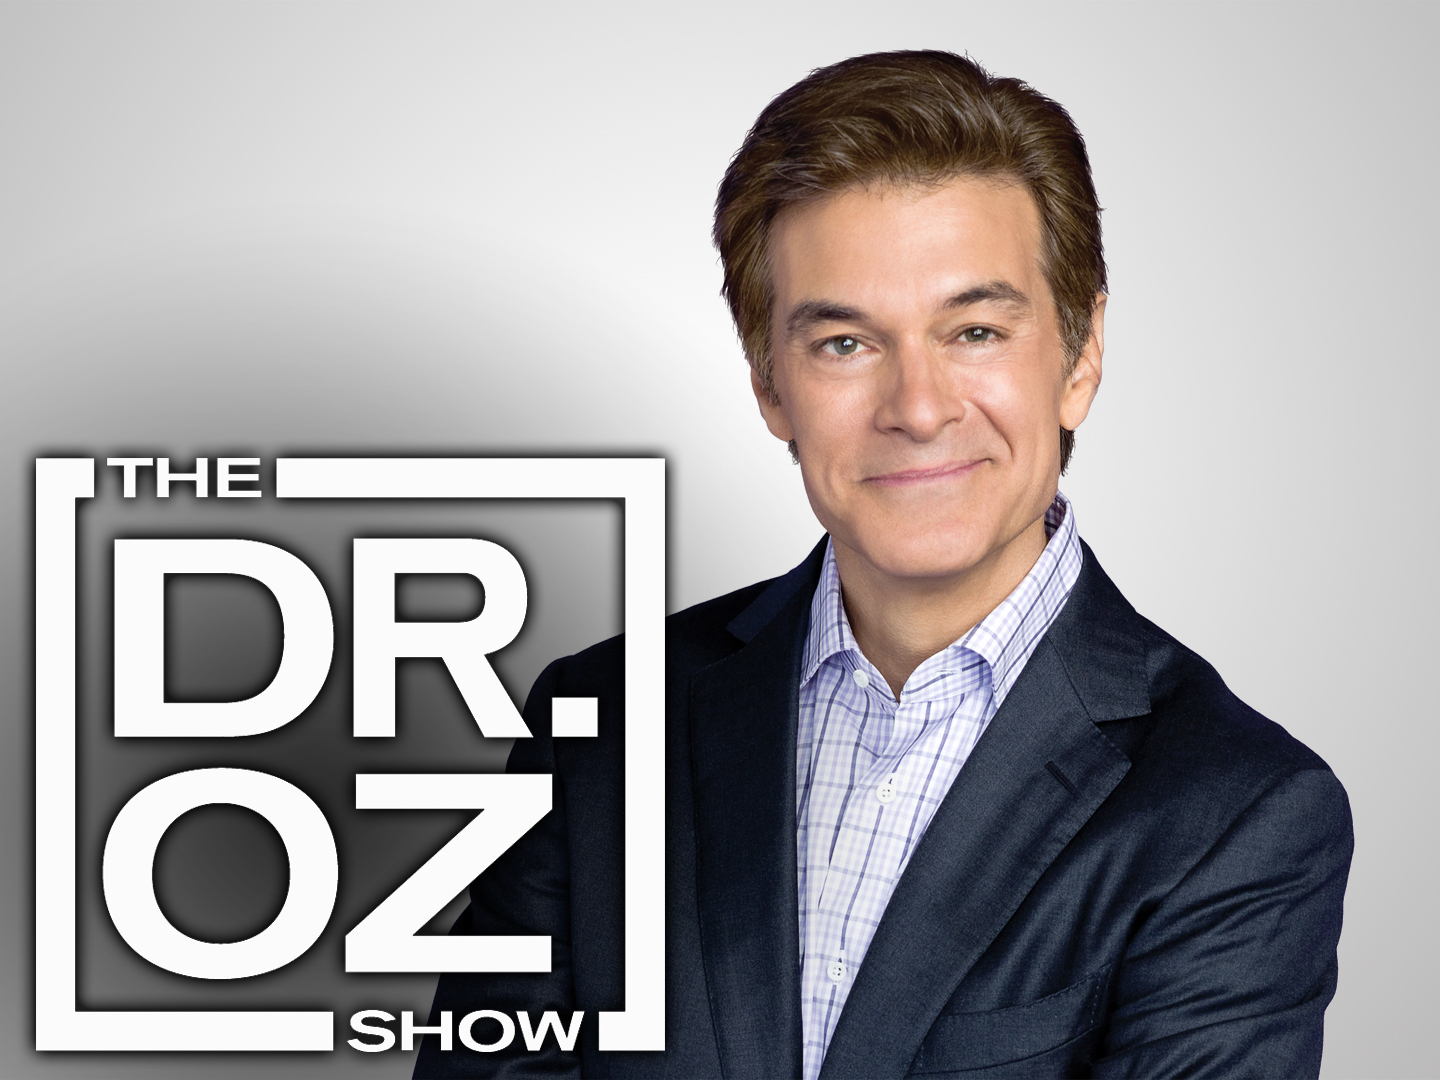 The-Dr-Oz-Show